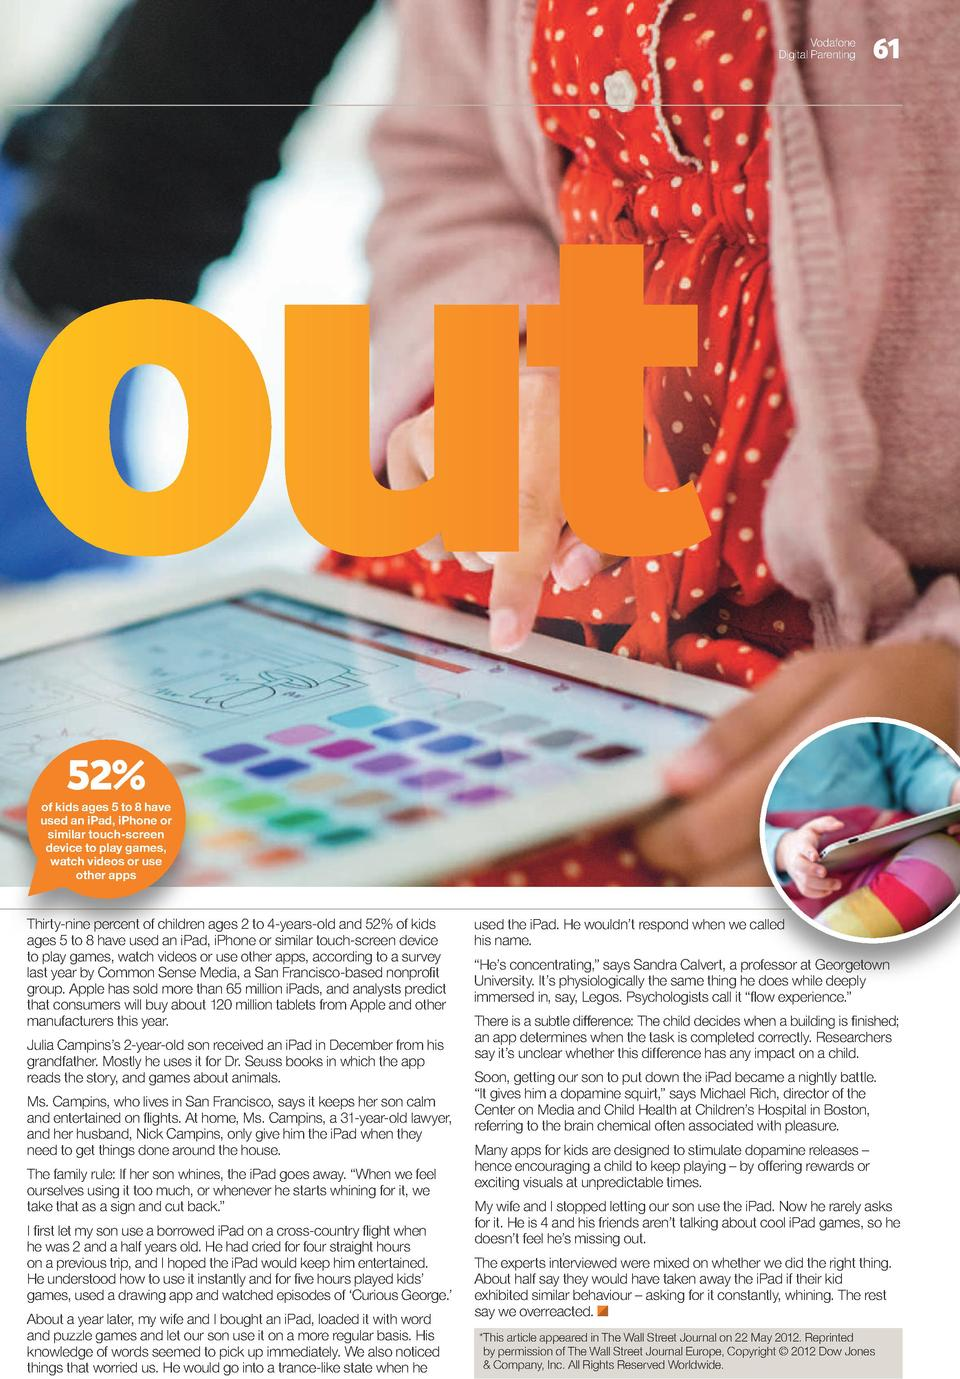 Vodafone Digital Parenting  61  52  of kids ages 5 to 8 have used an iPad, iPhone or similar touch-screen device to play g...